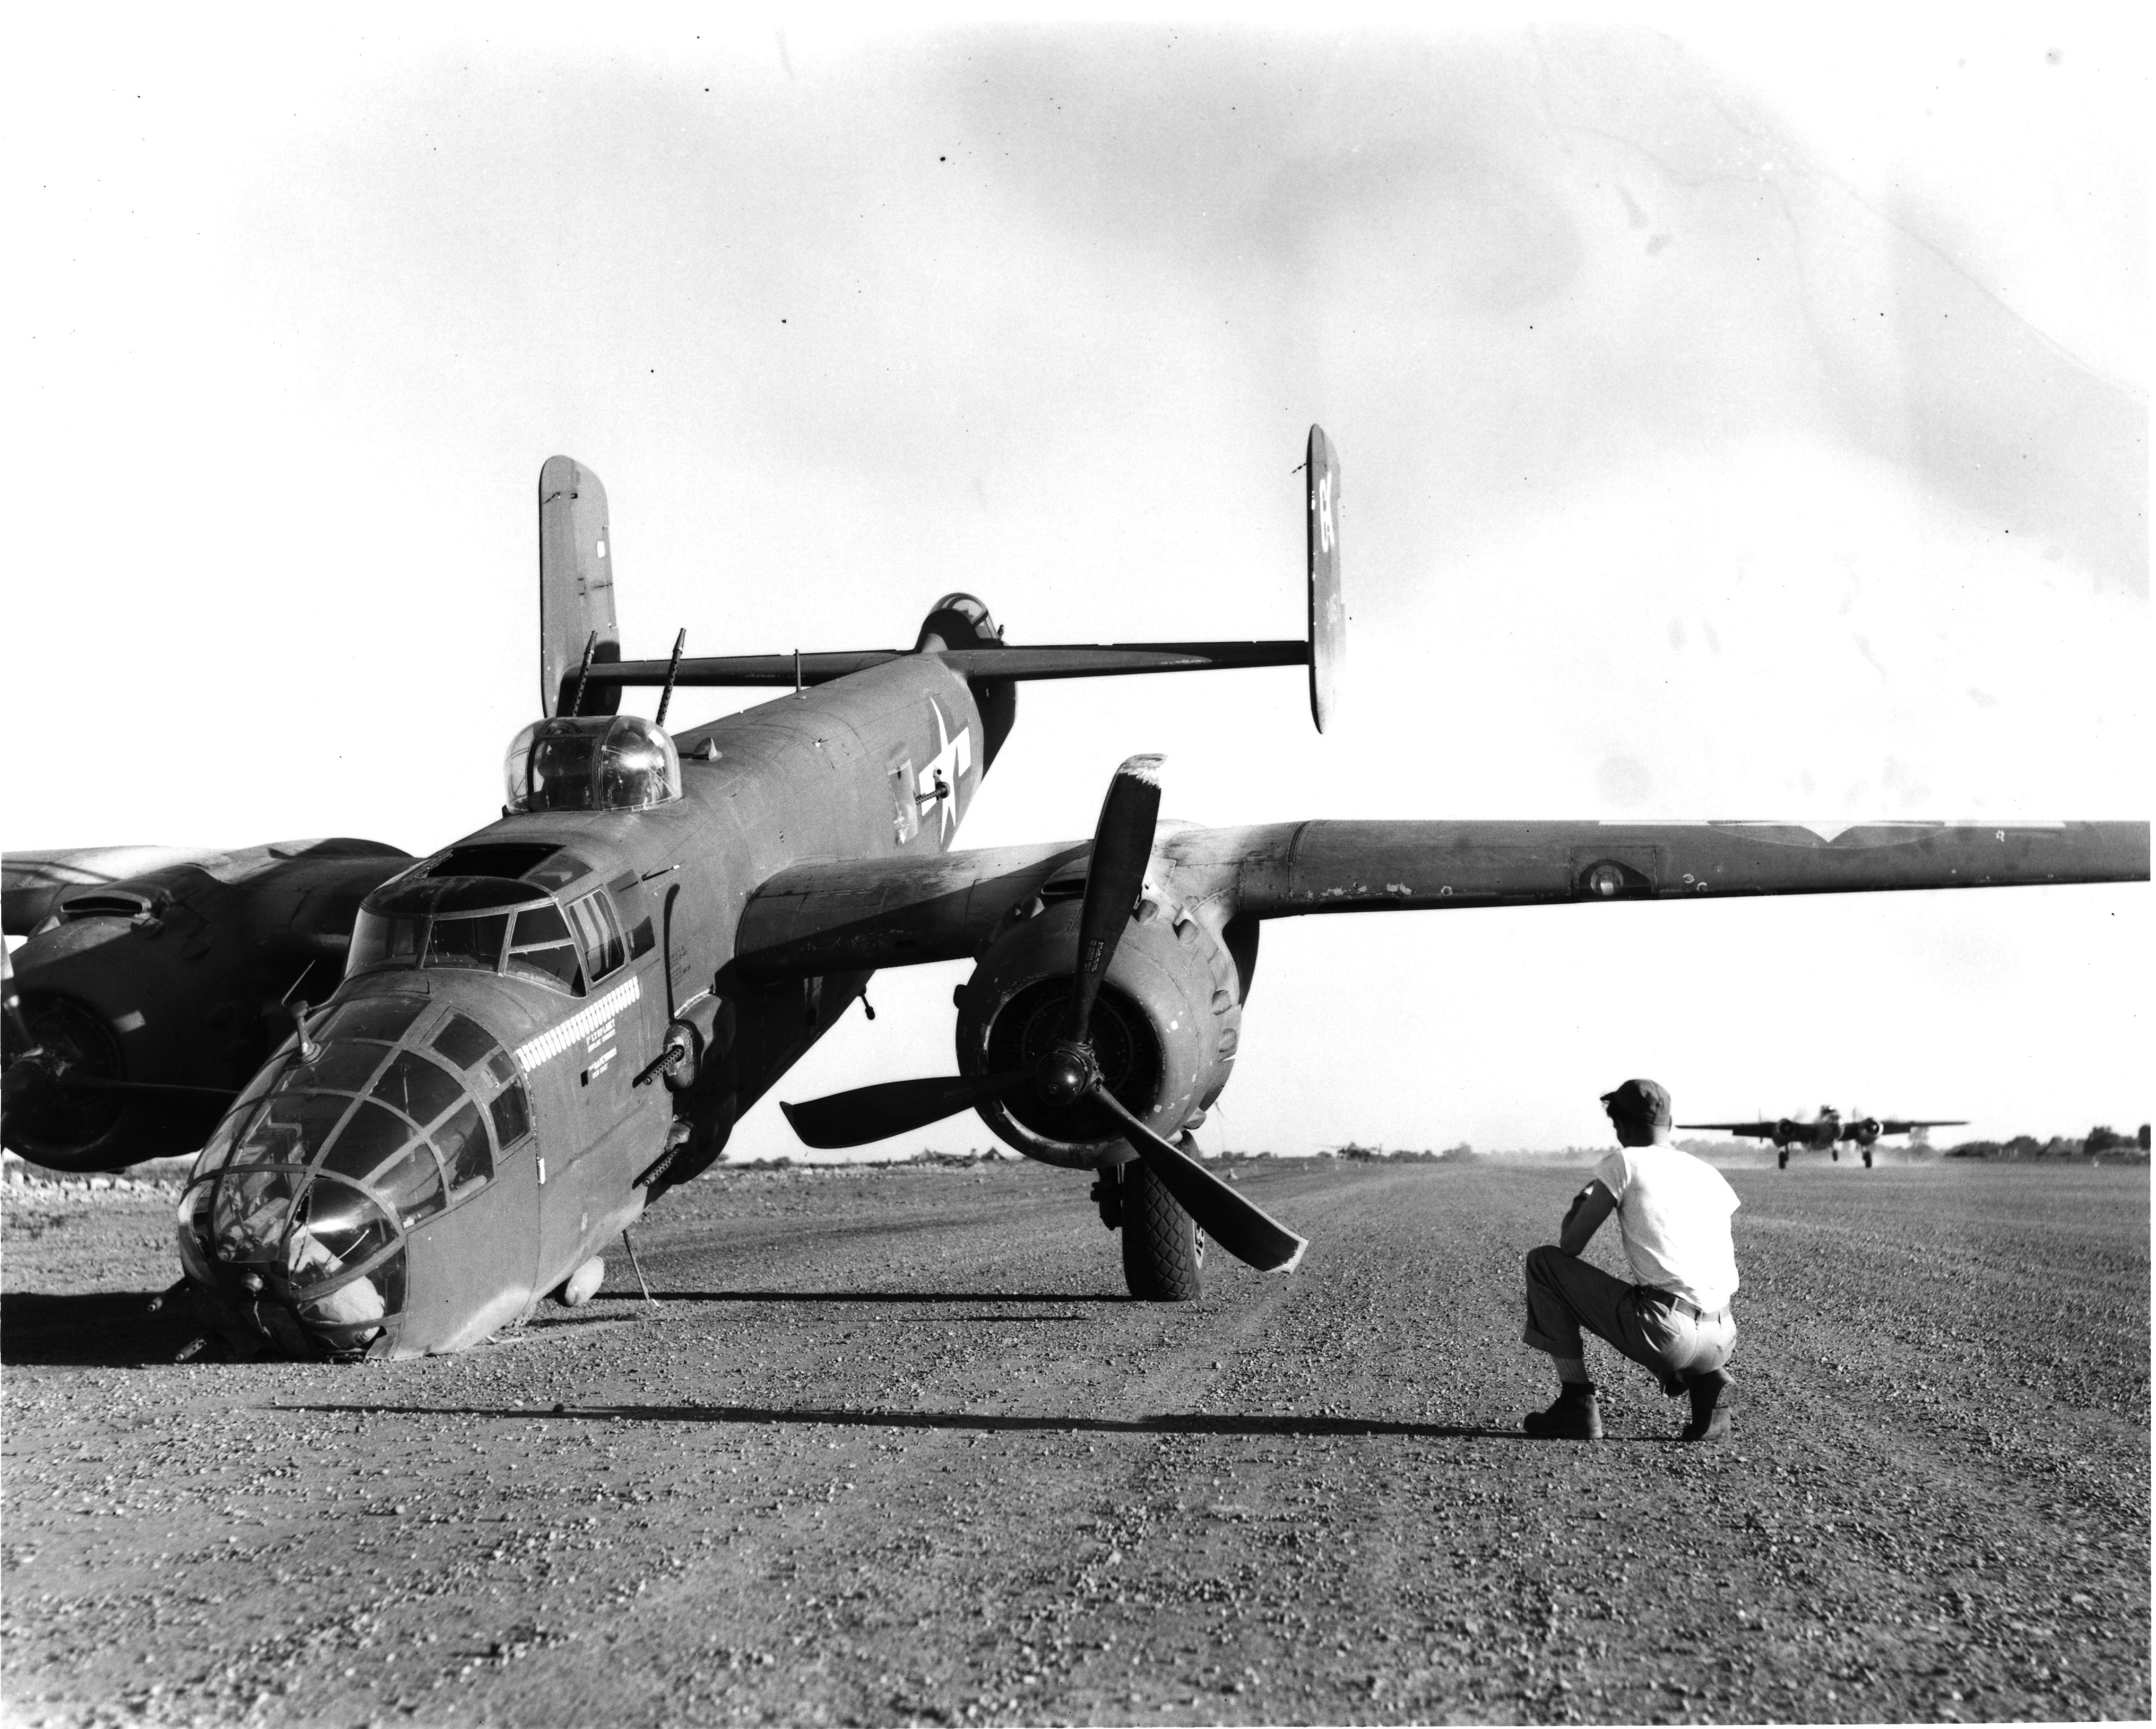 Nose_down_B-25